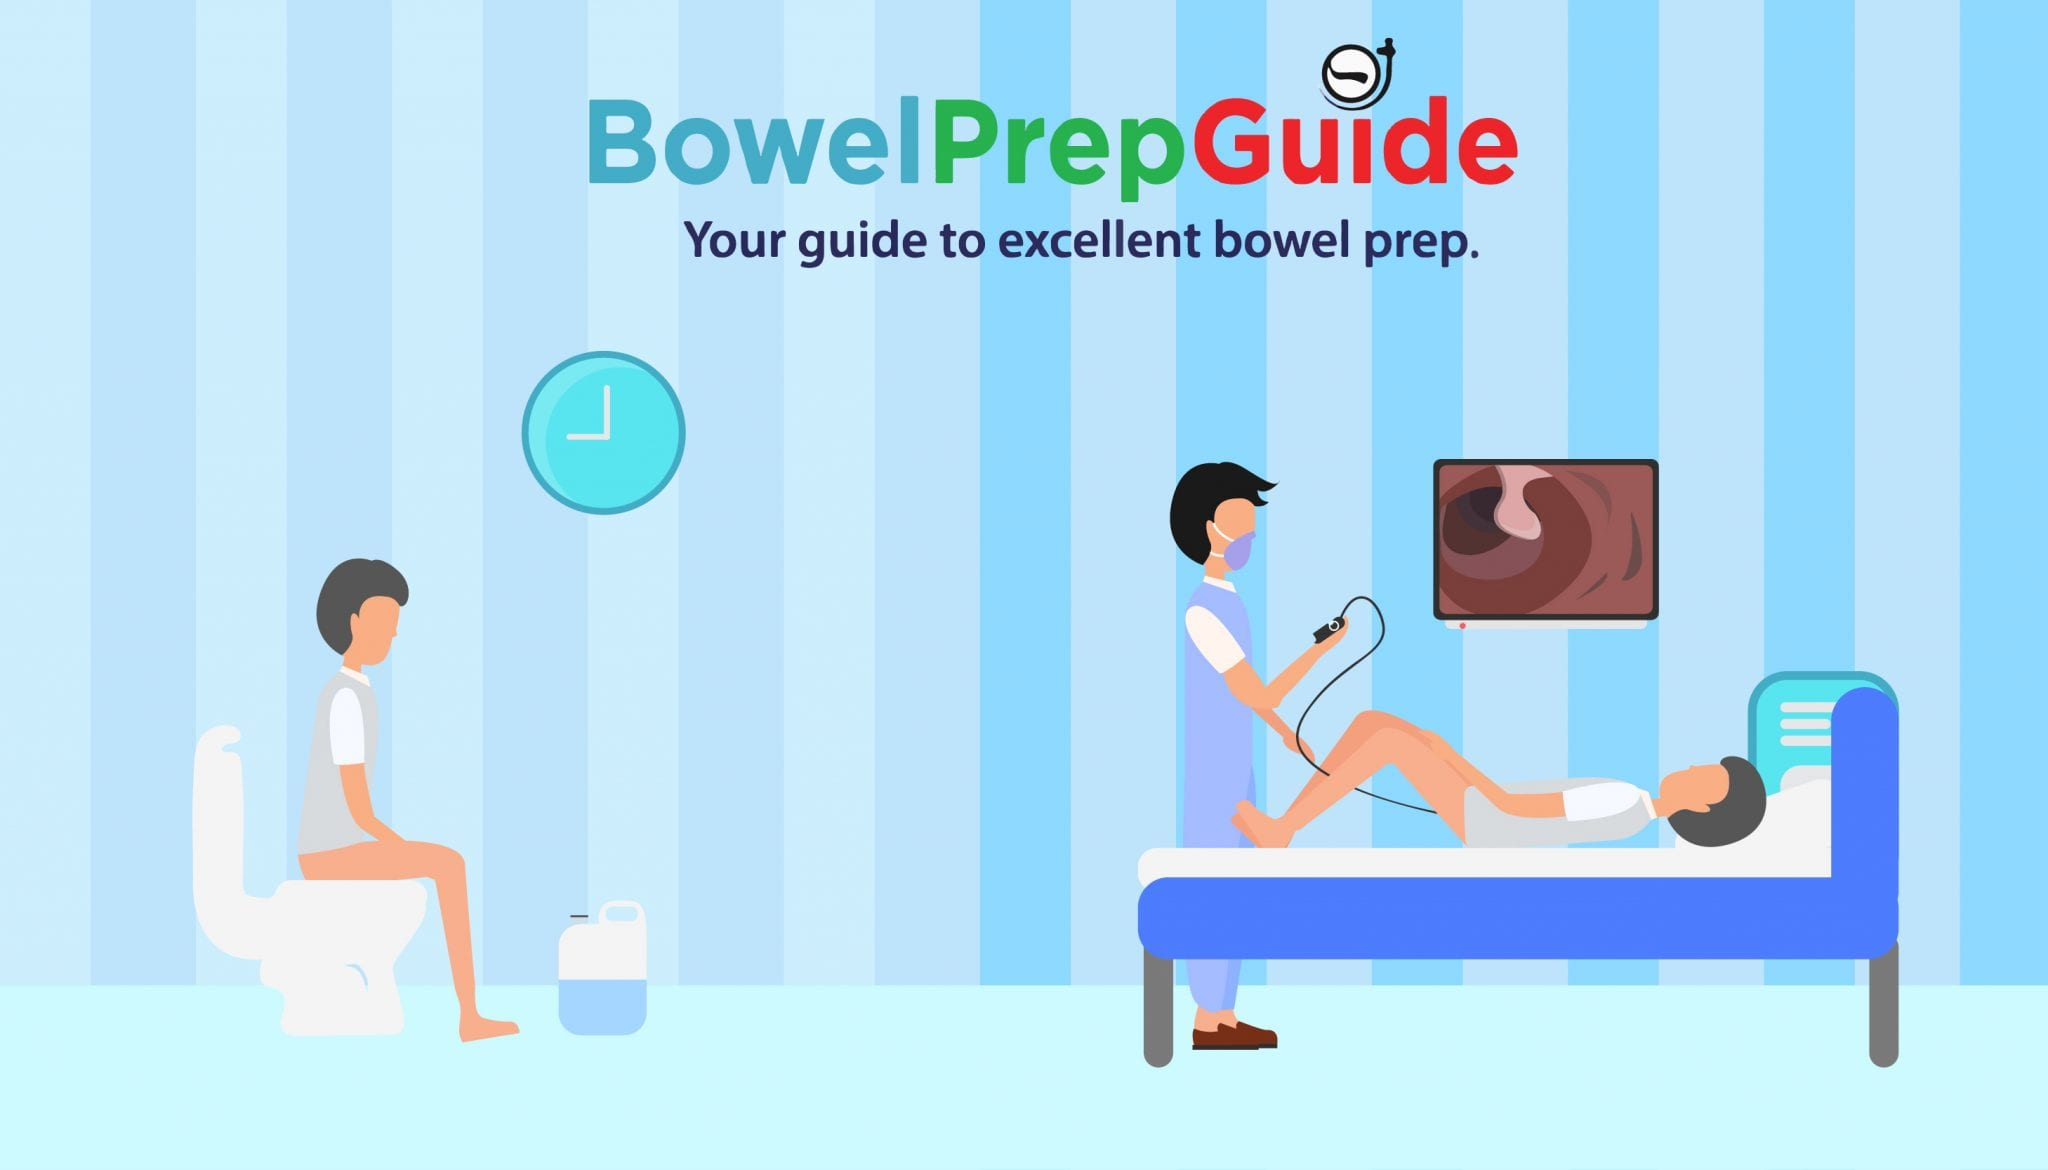 How to tell if your bowel is clean for colonoscopy